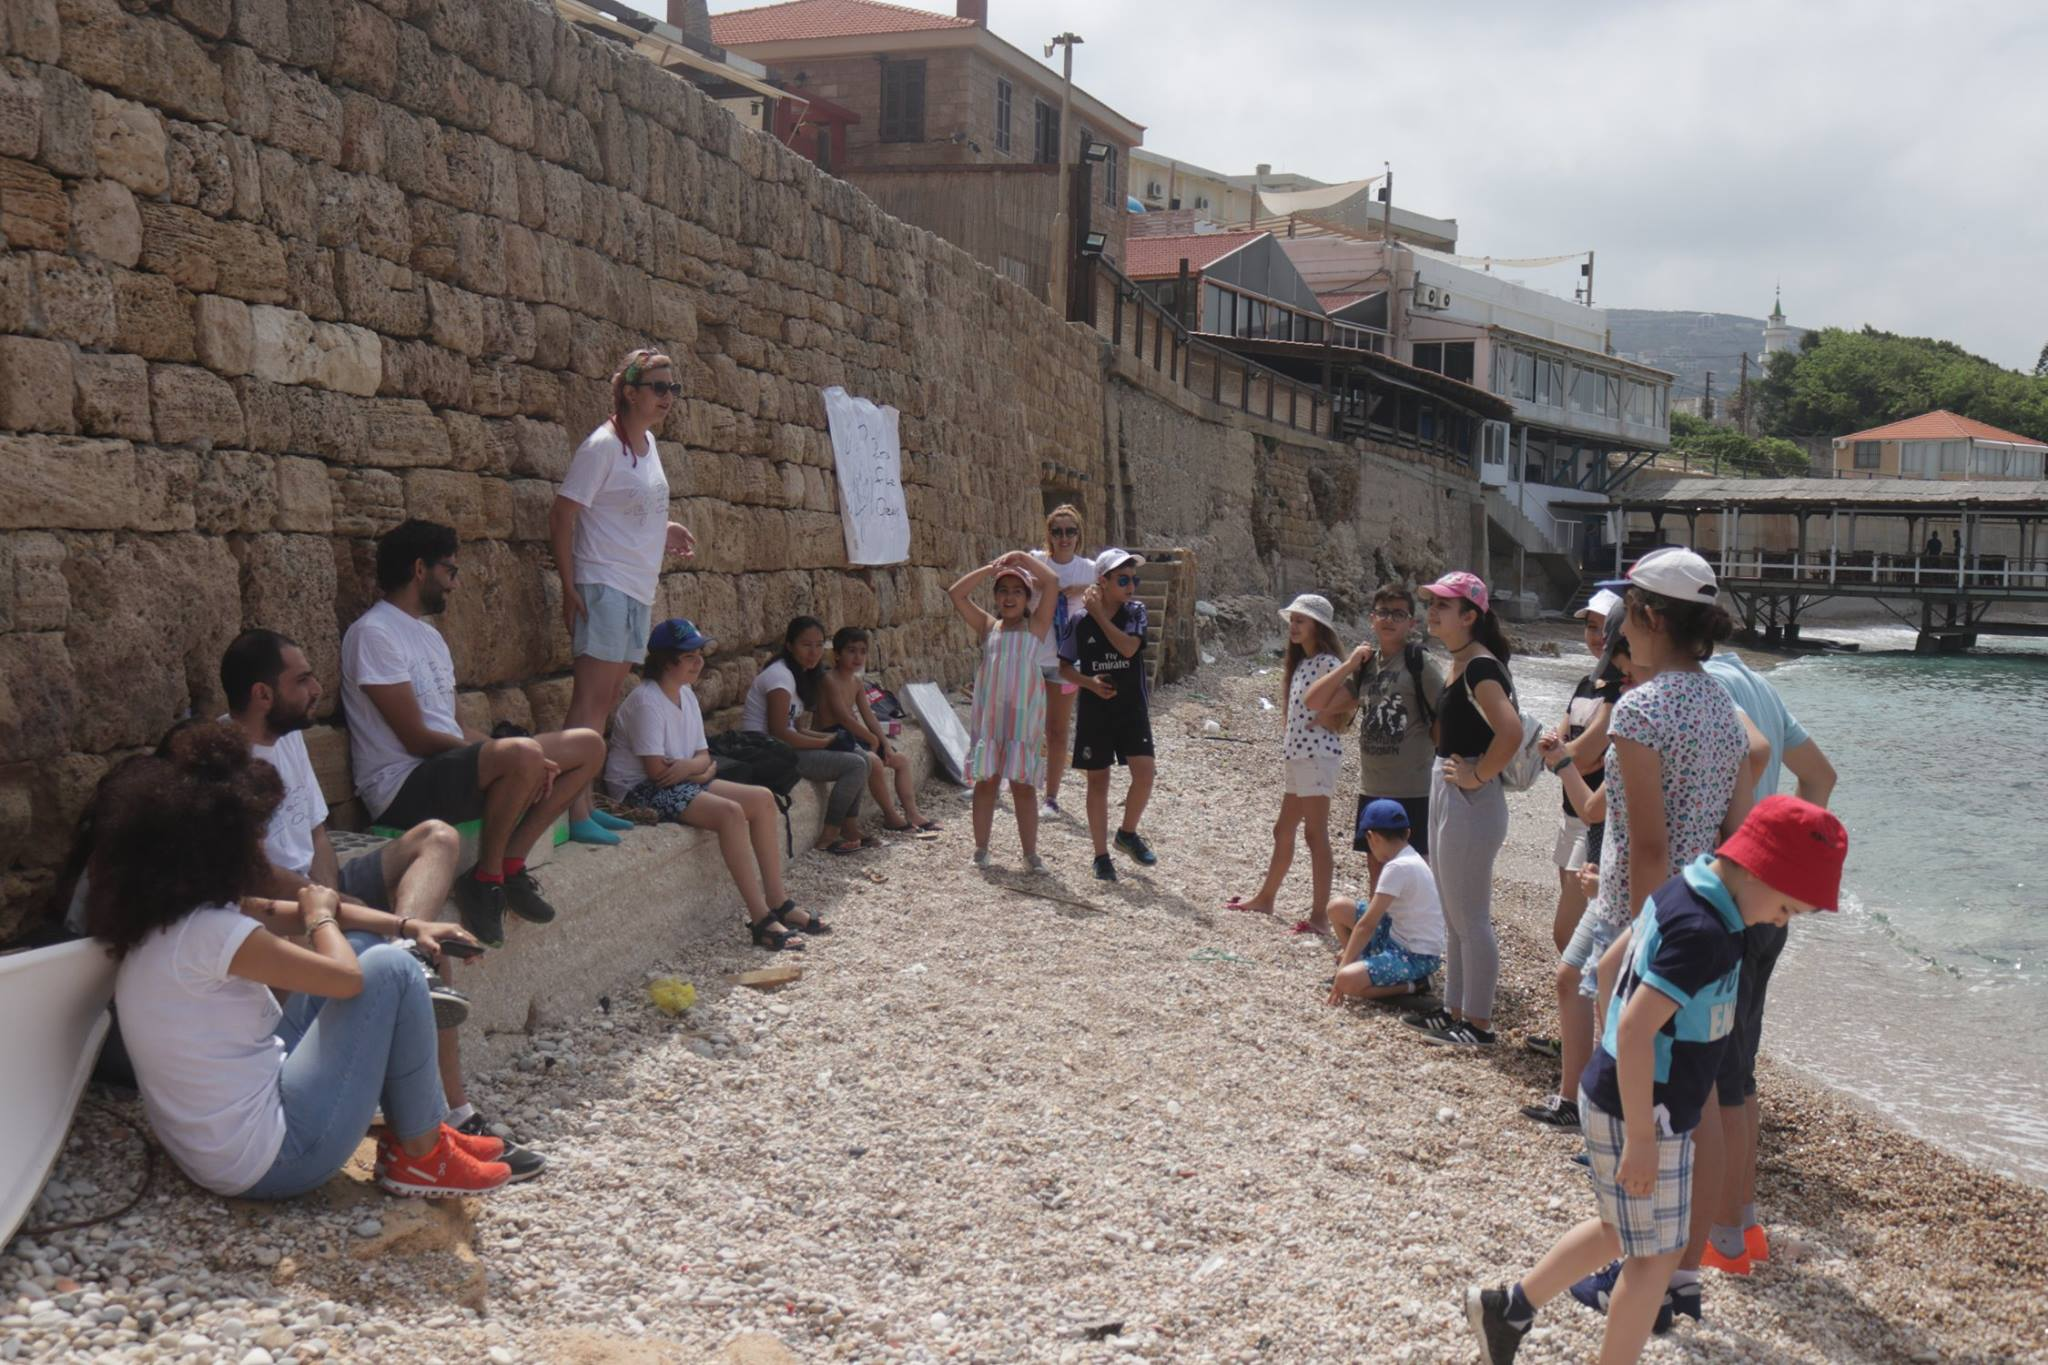 Training of students from Batroun's Russian Cultural Center on marine biodiversity, marine pollution and fishermen practices followed by a beach clean-up